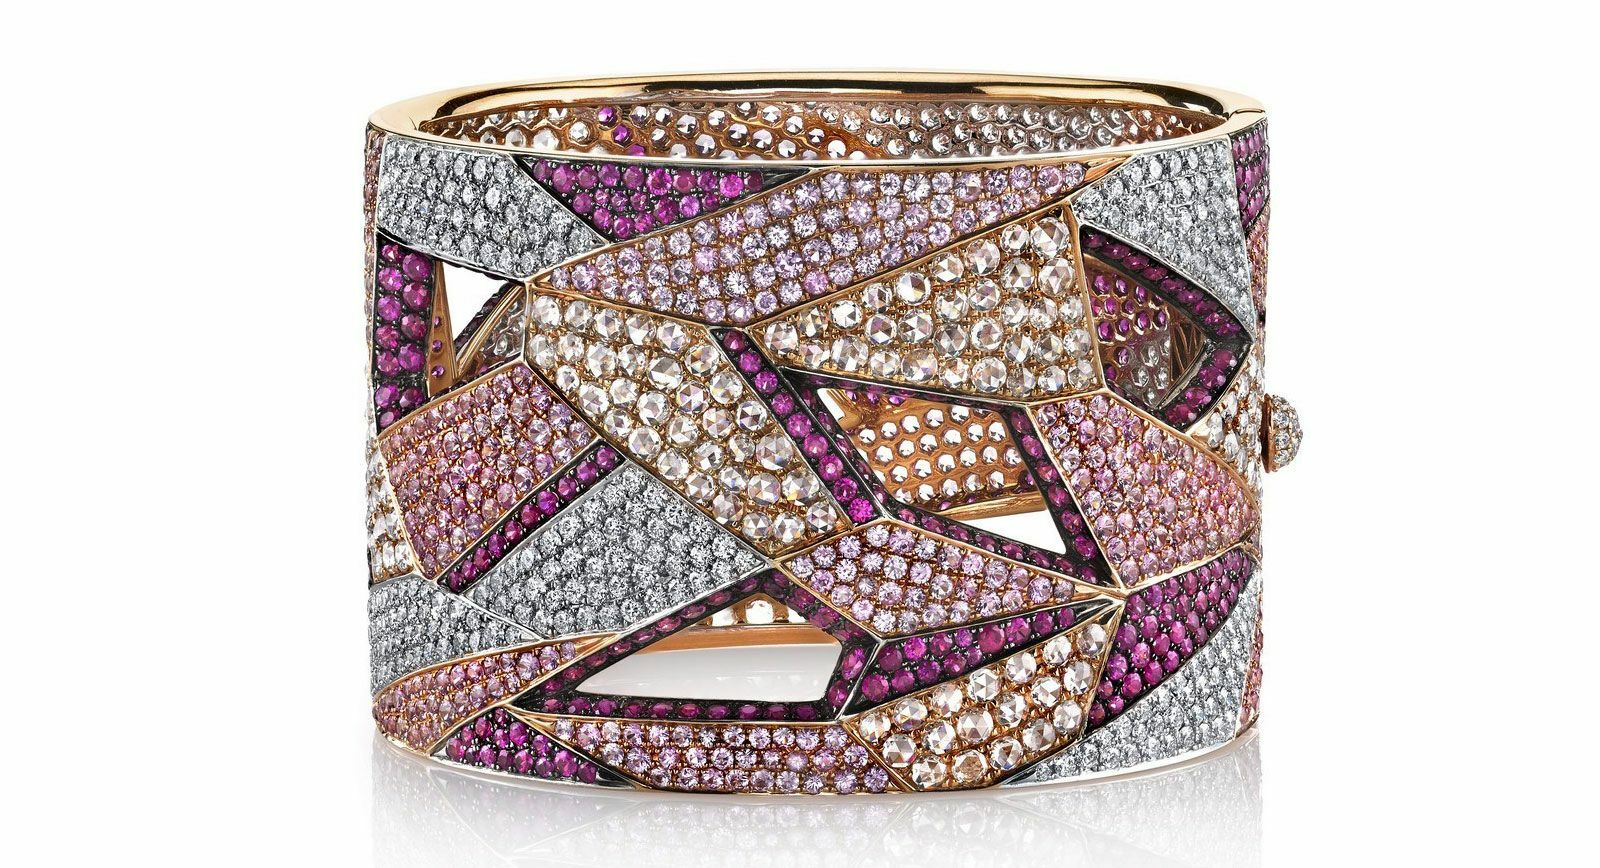 Baselworld Jewellery Trends: Bejewelled Kaleidoscope